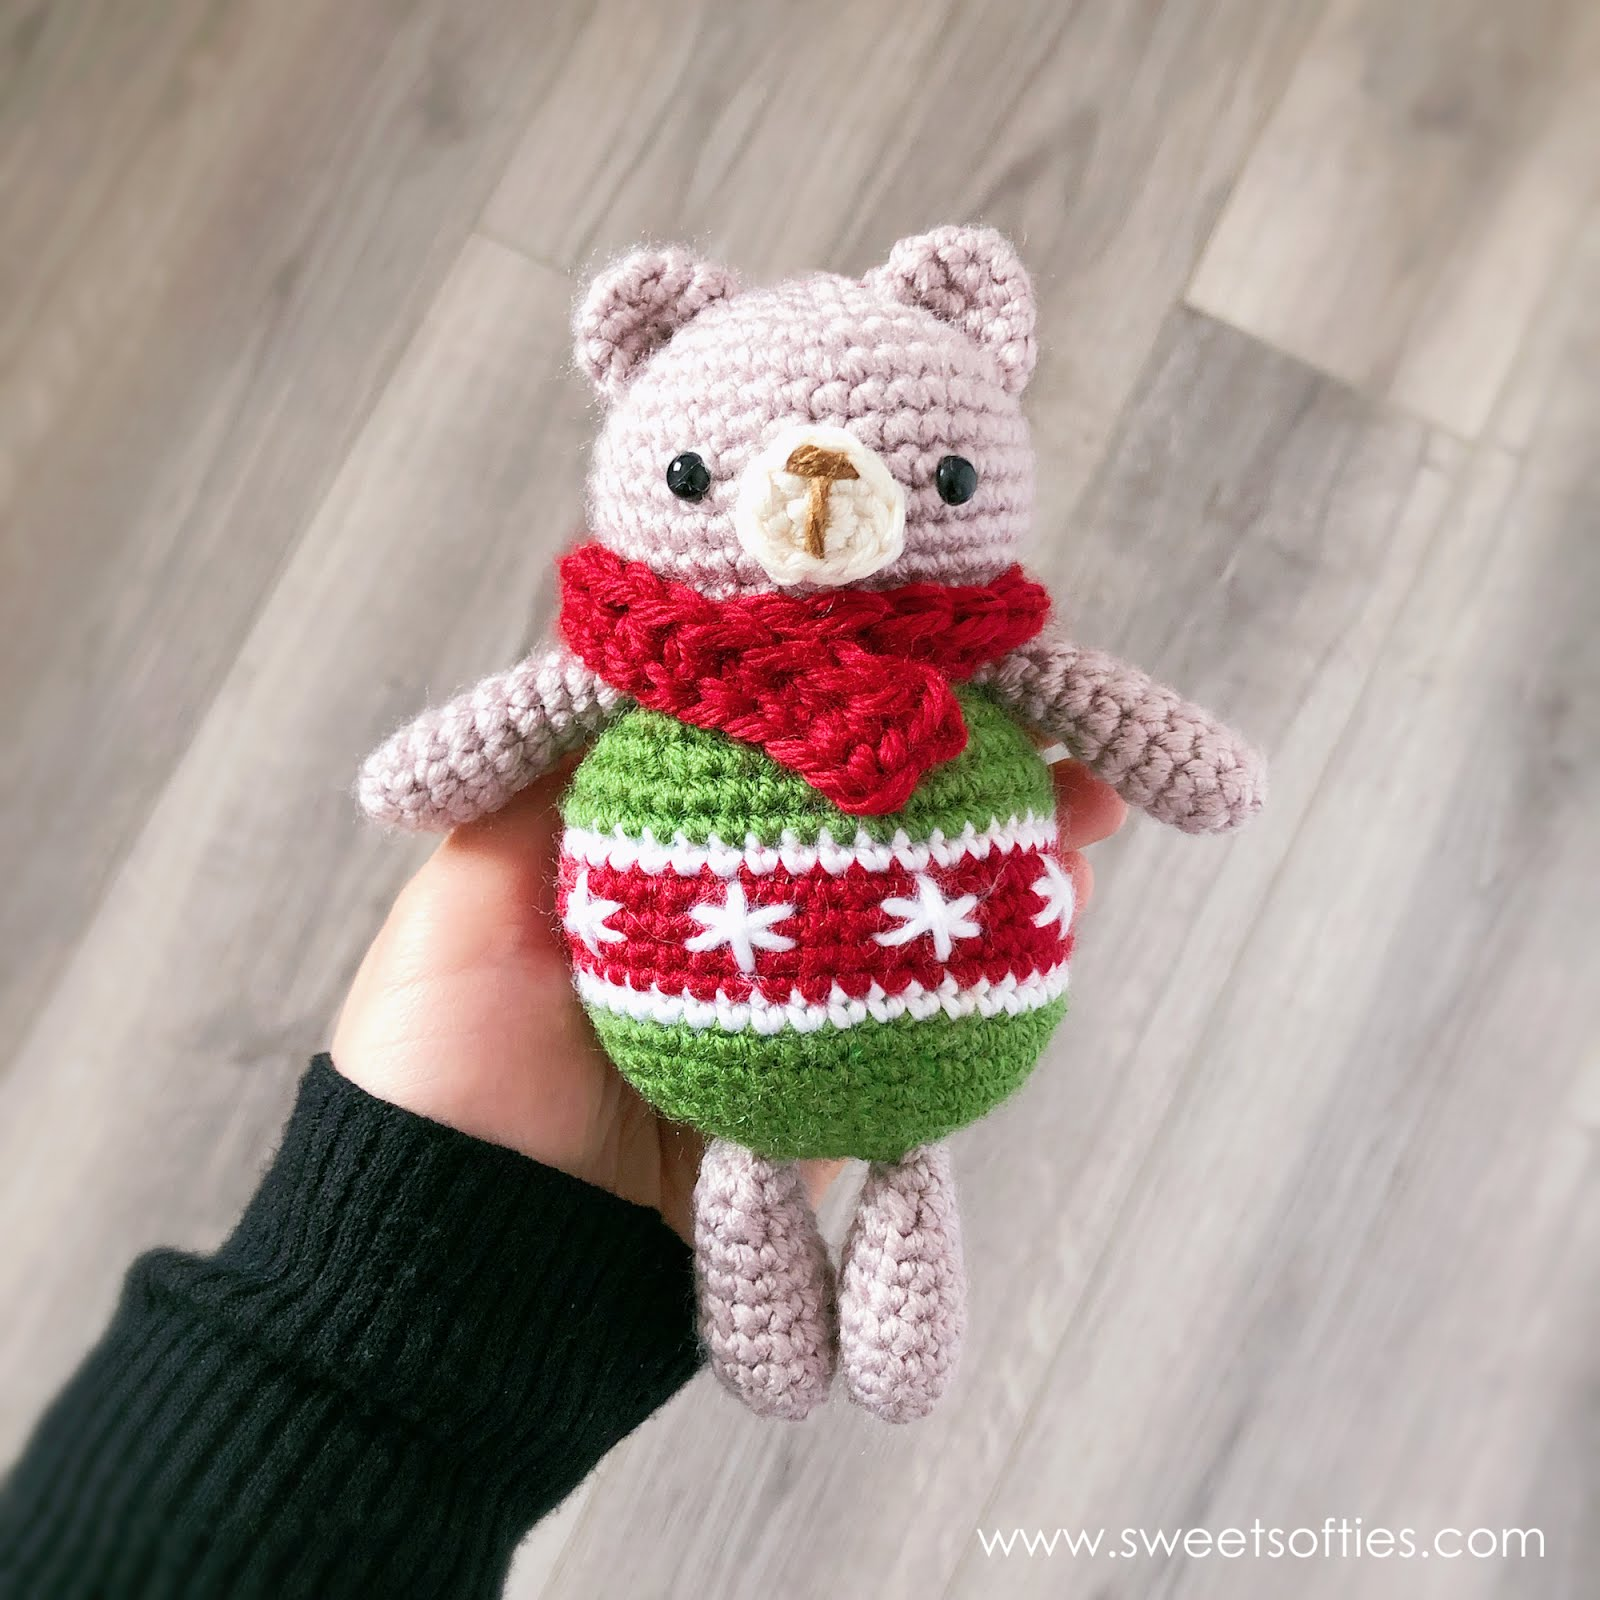 Amigurumi Crochet Christmas Softies Toy Free Patterns ... | 1600x1600